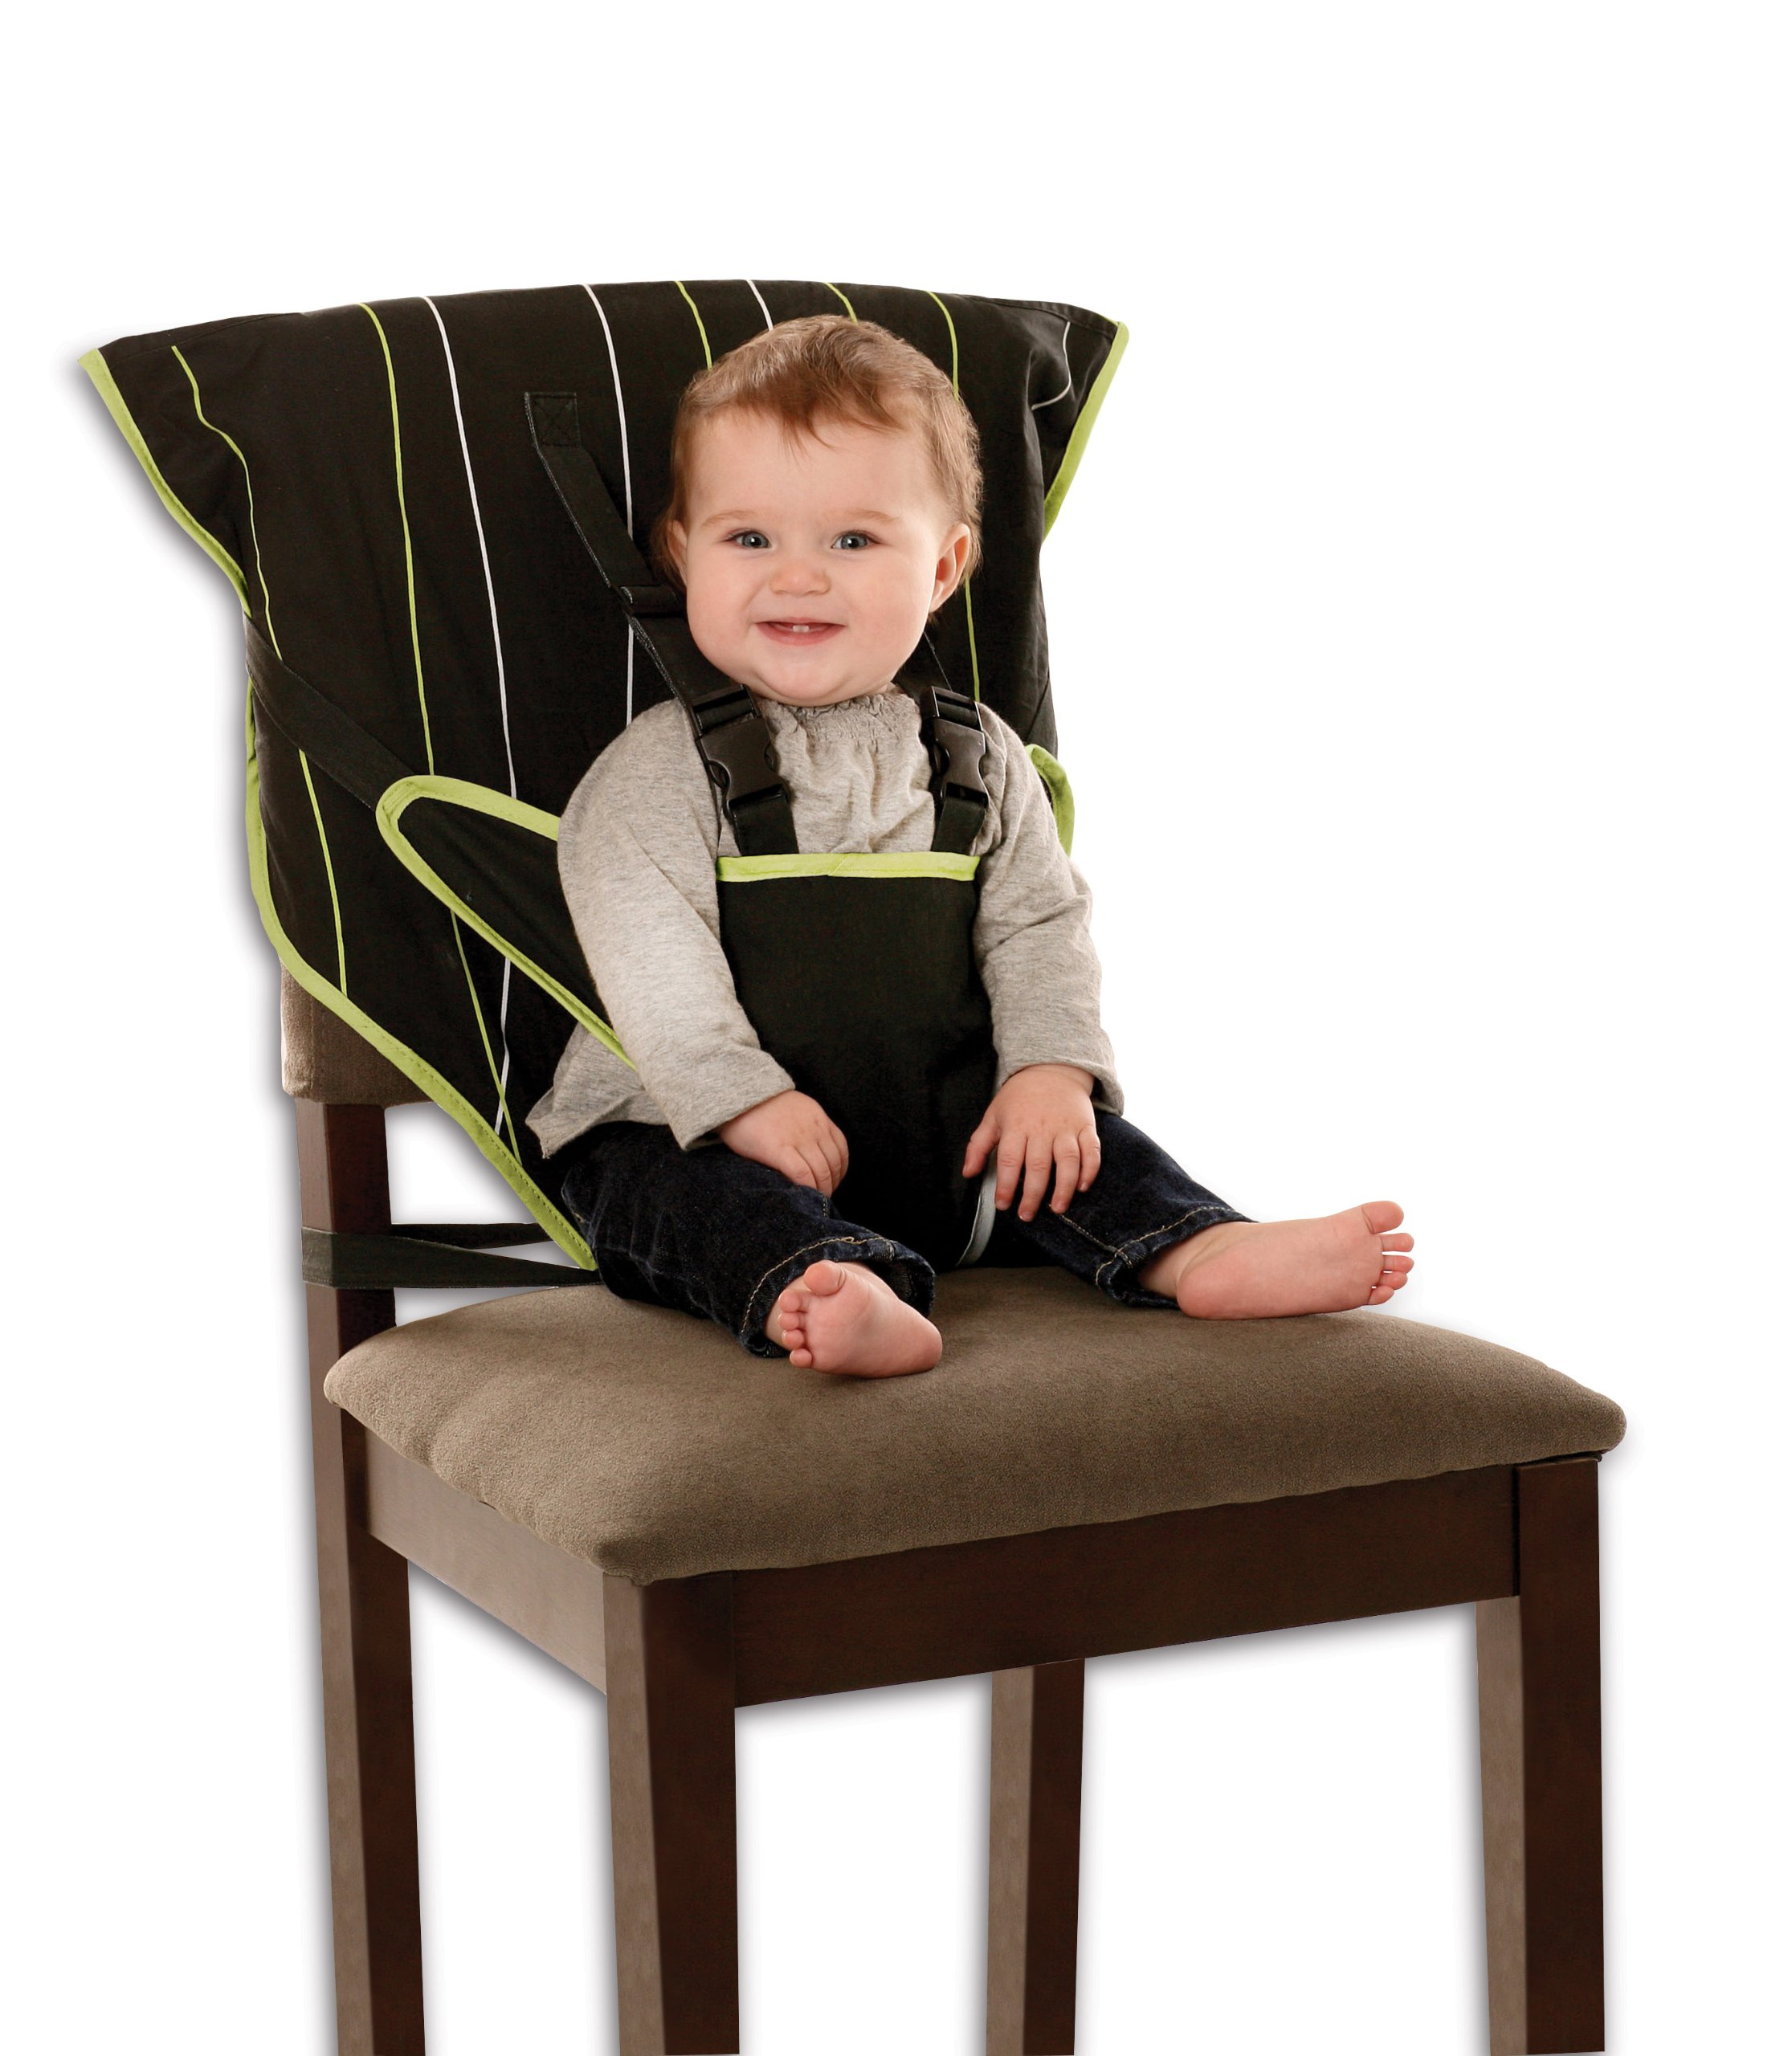 Cozy Cover Easy Seat Portable High Chair (Black) - Quick, Easy, Convenient Cloth Travel High Chair Fits in Your Hand Bag So That You Can Have It With You Everywhere For a Happier, Safer Infant/Toddler